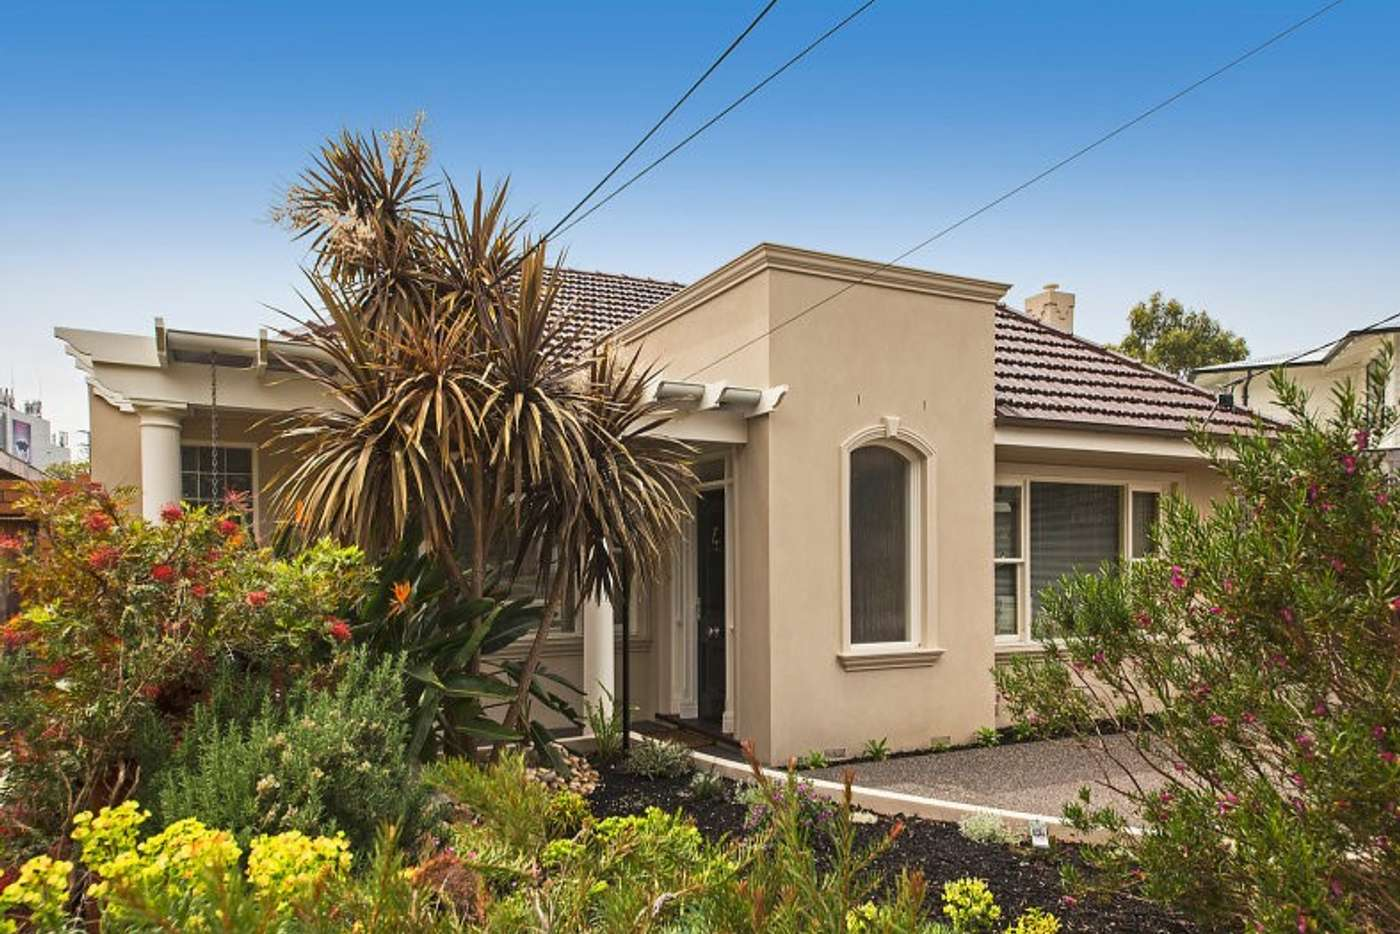 Main view of Homely house listing, 3 Warland Road, Hampton East VIC 3188